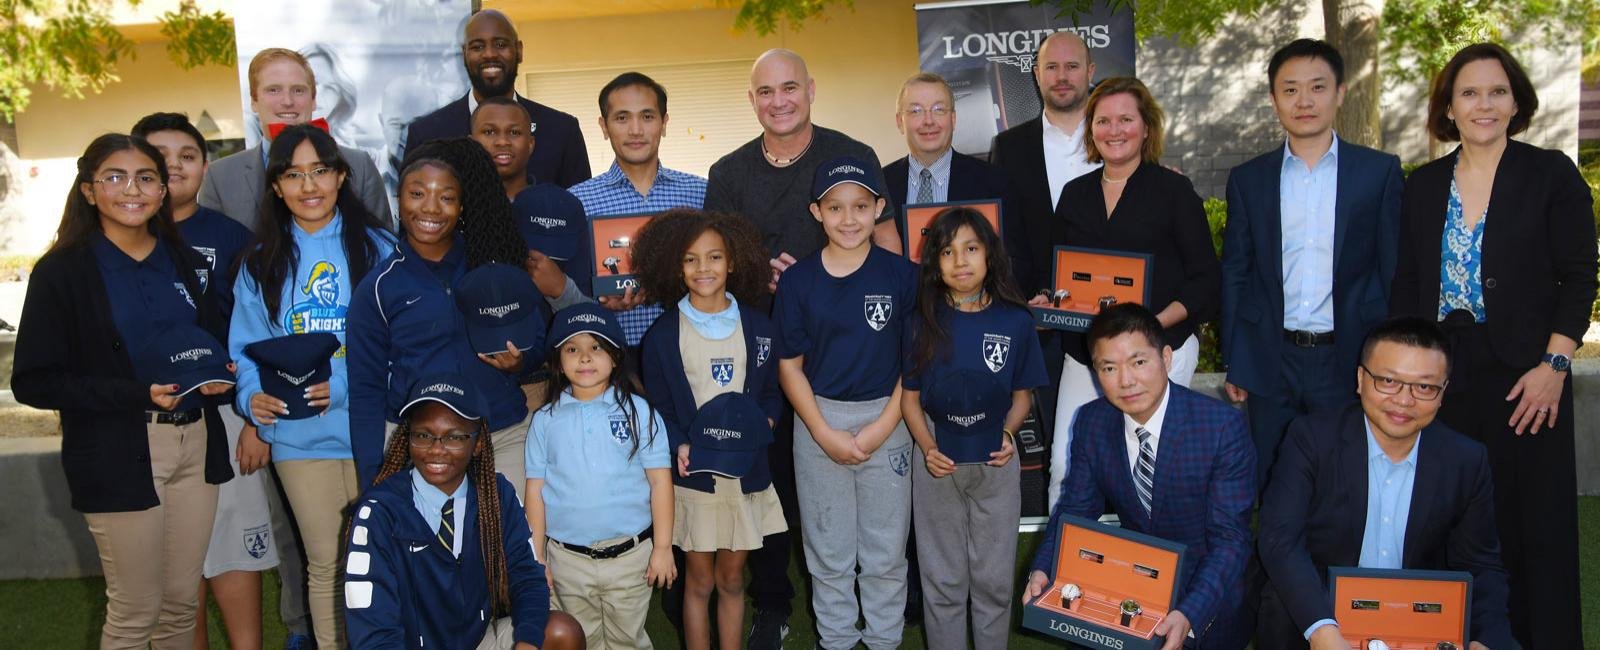 Andre Agassi Foundation for Education, Conquest V.H.P. Stefanie Graf & Andre Agassi Foundations,